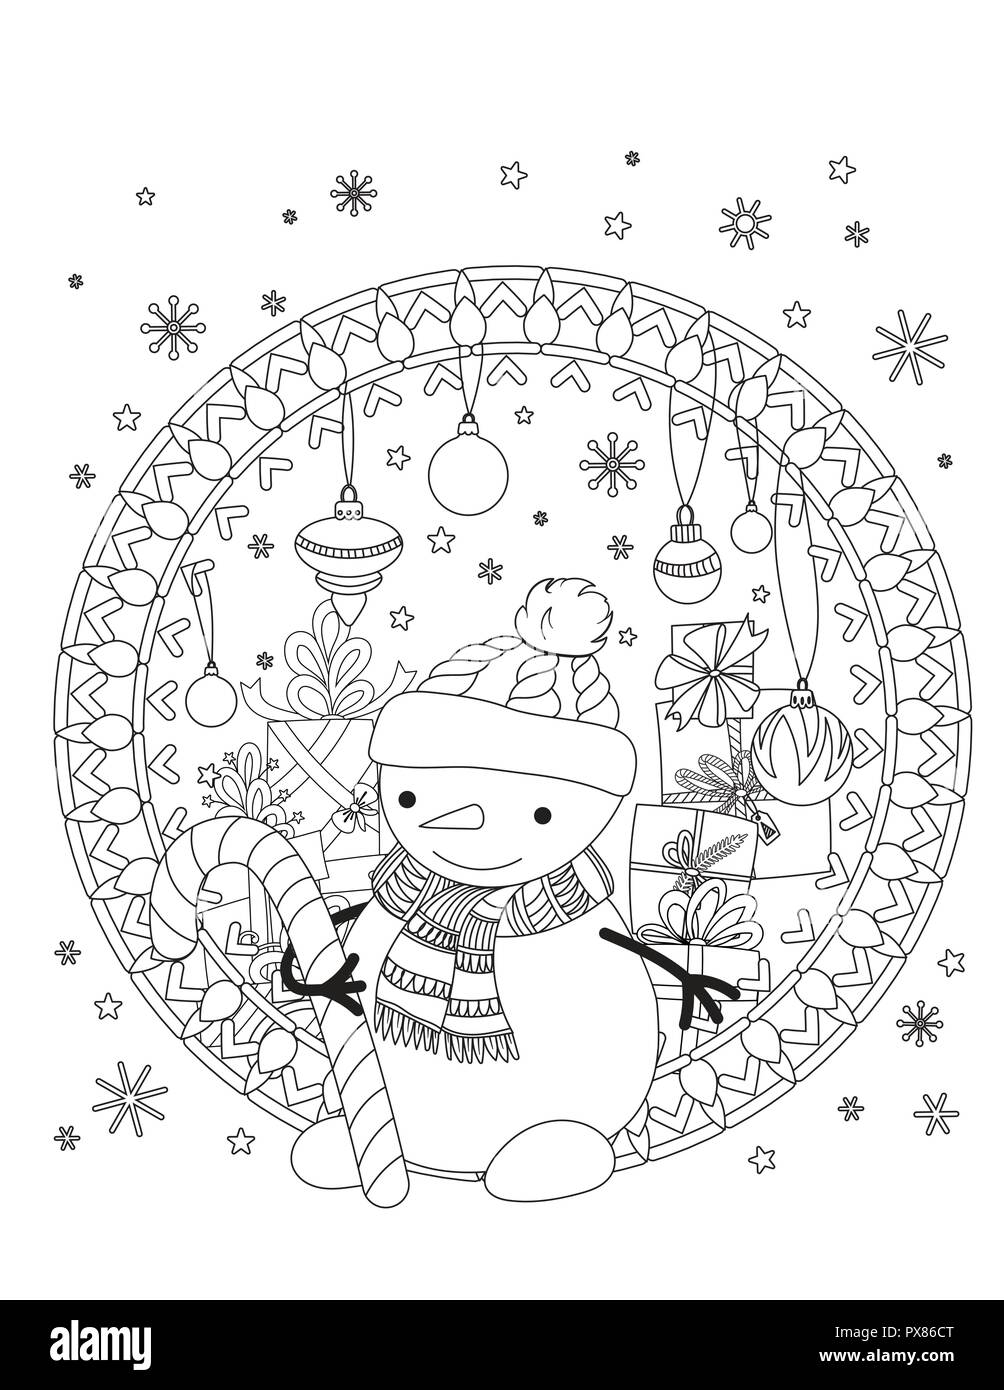 - Christmas Coloring Page. Adult Coloring Book. Cute Snowman With